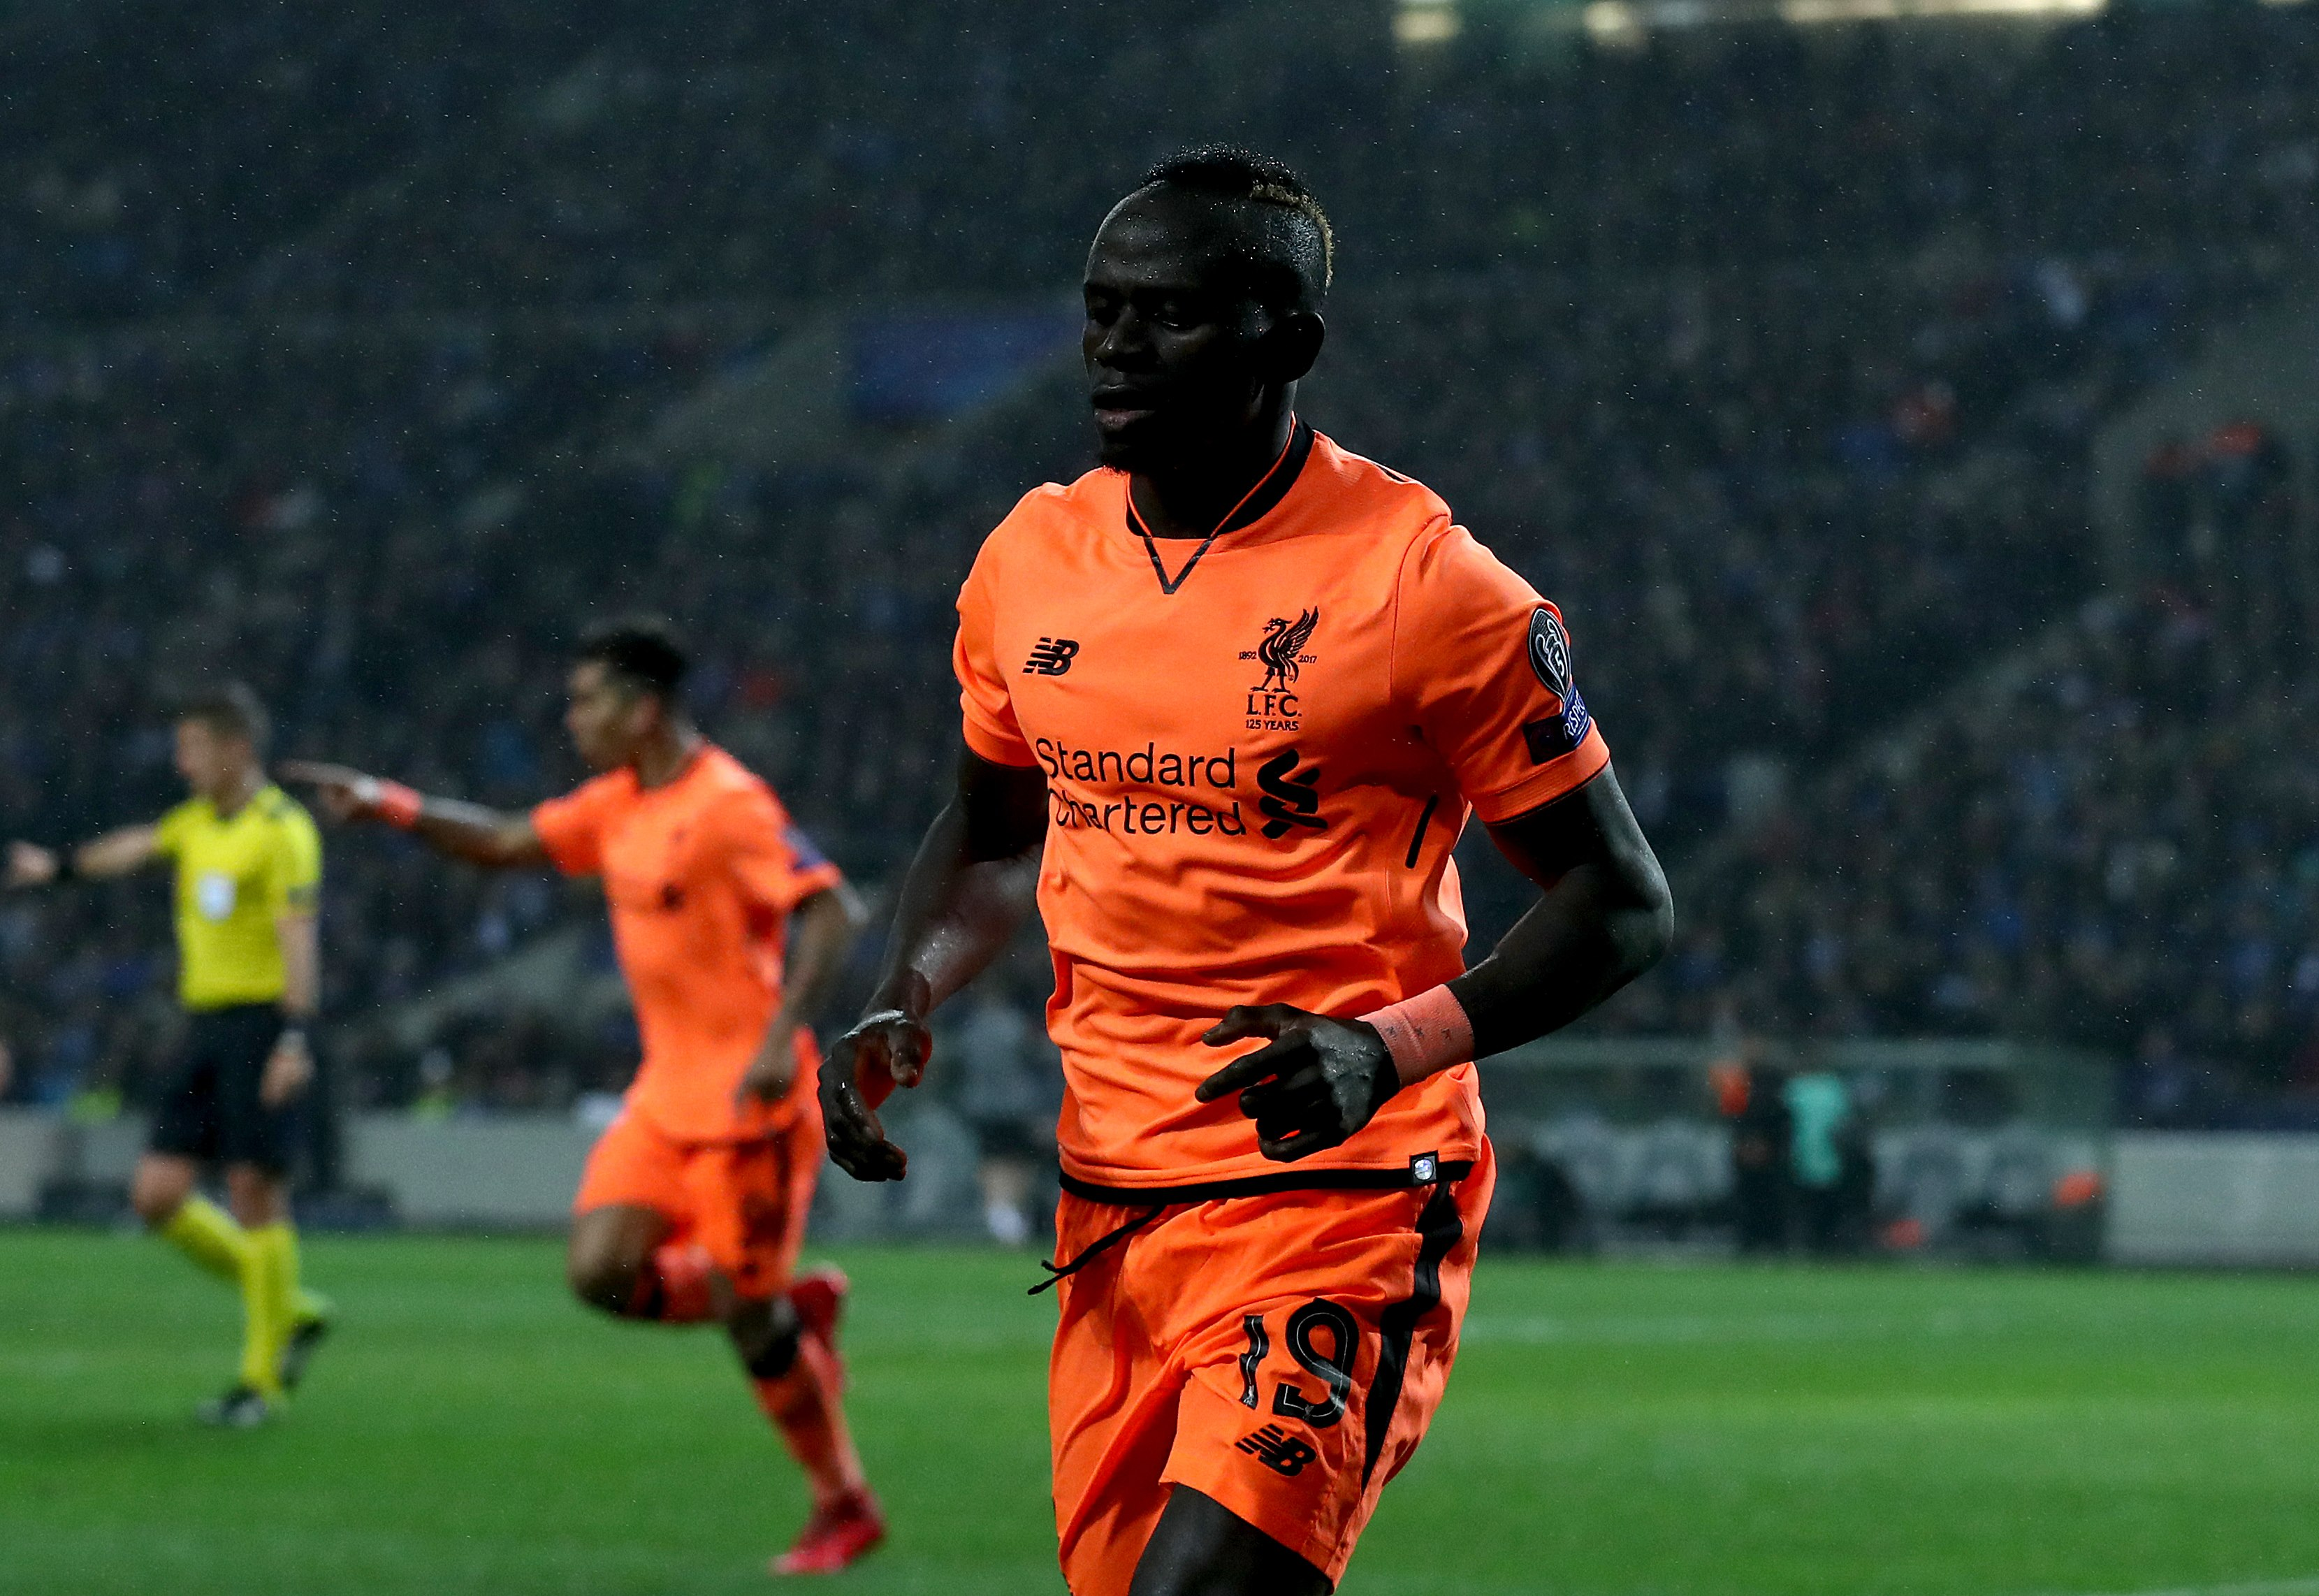 Champions League: Liverpool's Sadio Mane named player of the week